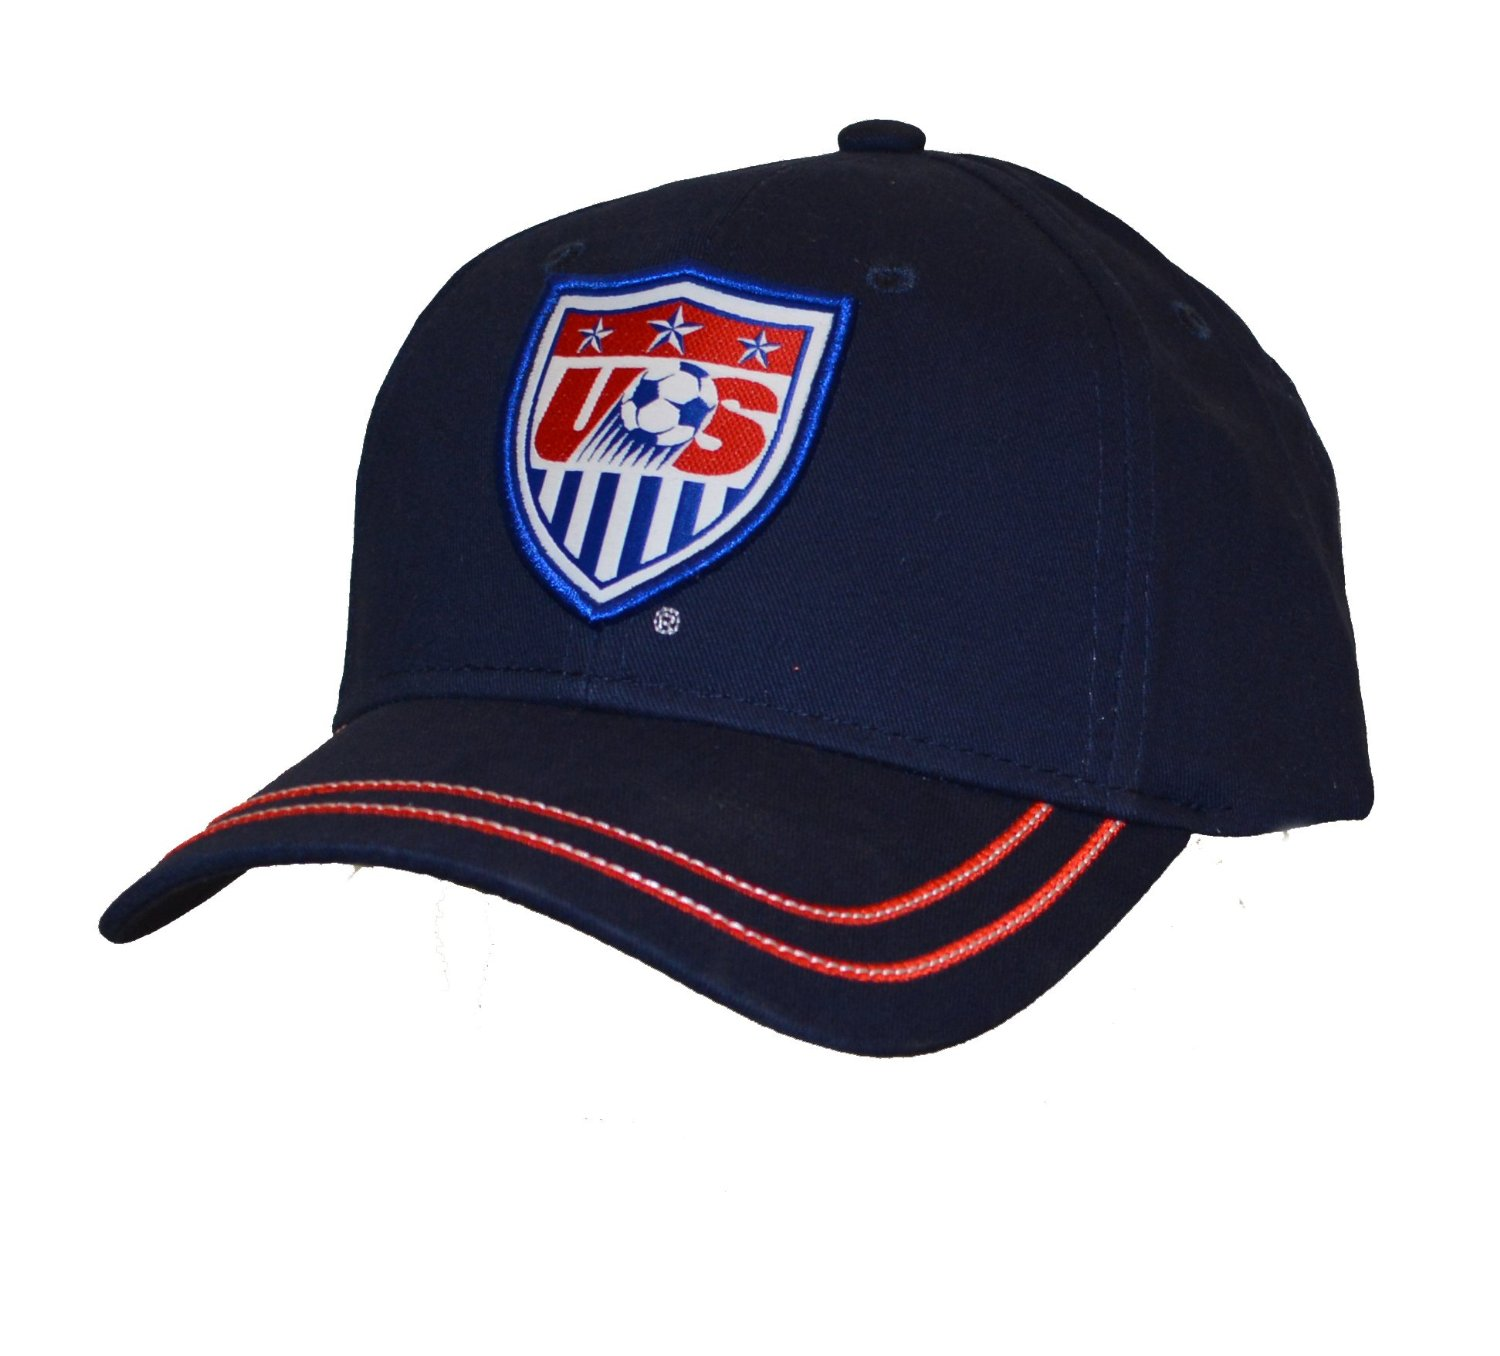 51f4f386799 Get Quotations · USA Cap Adjustable Hat Official Football Soccer  Merchandise USA